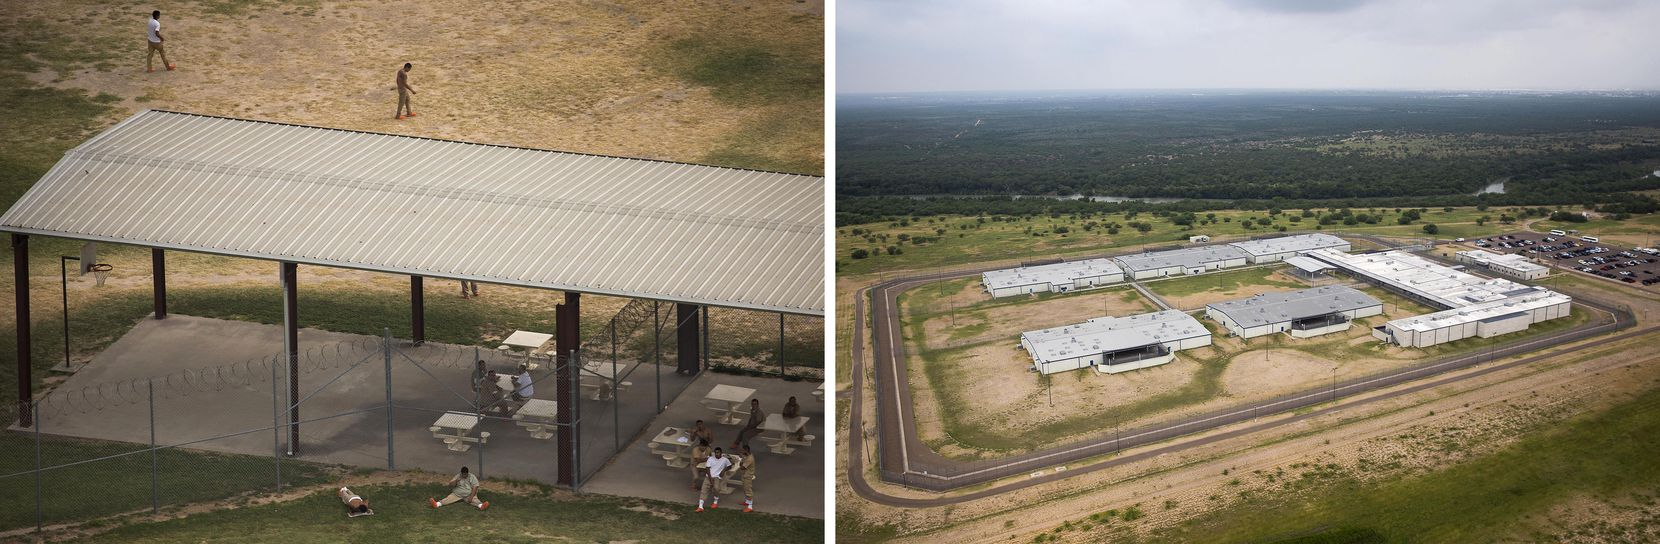 Inmates in the Webb County Detention Center (left), a few miles away from El Cenizo, Texas, and (right) the U.S. Immigration and Customs Enforcement (ICE) Rio Grande Detention Center near the same area.